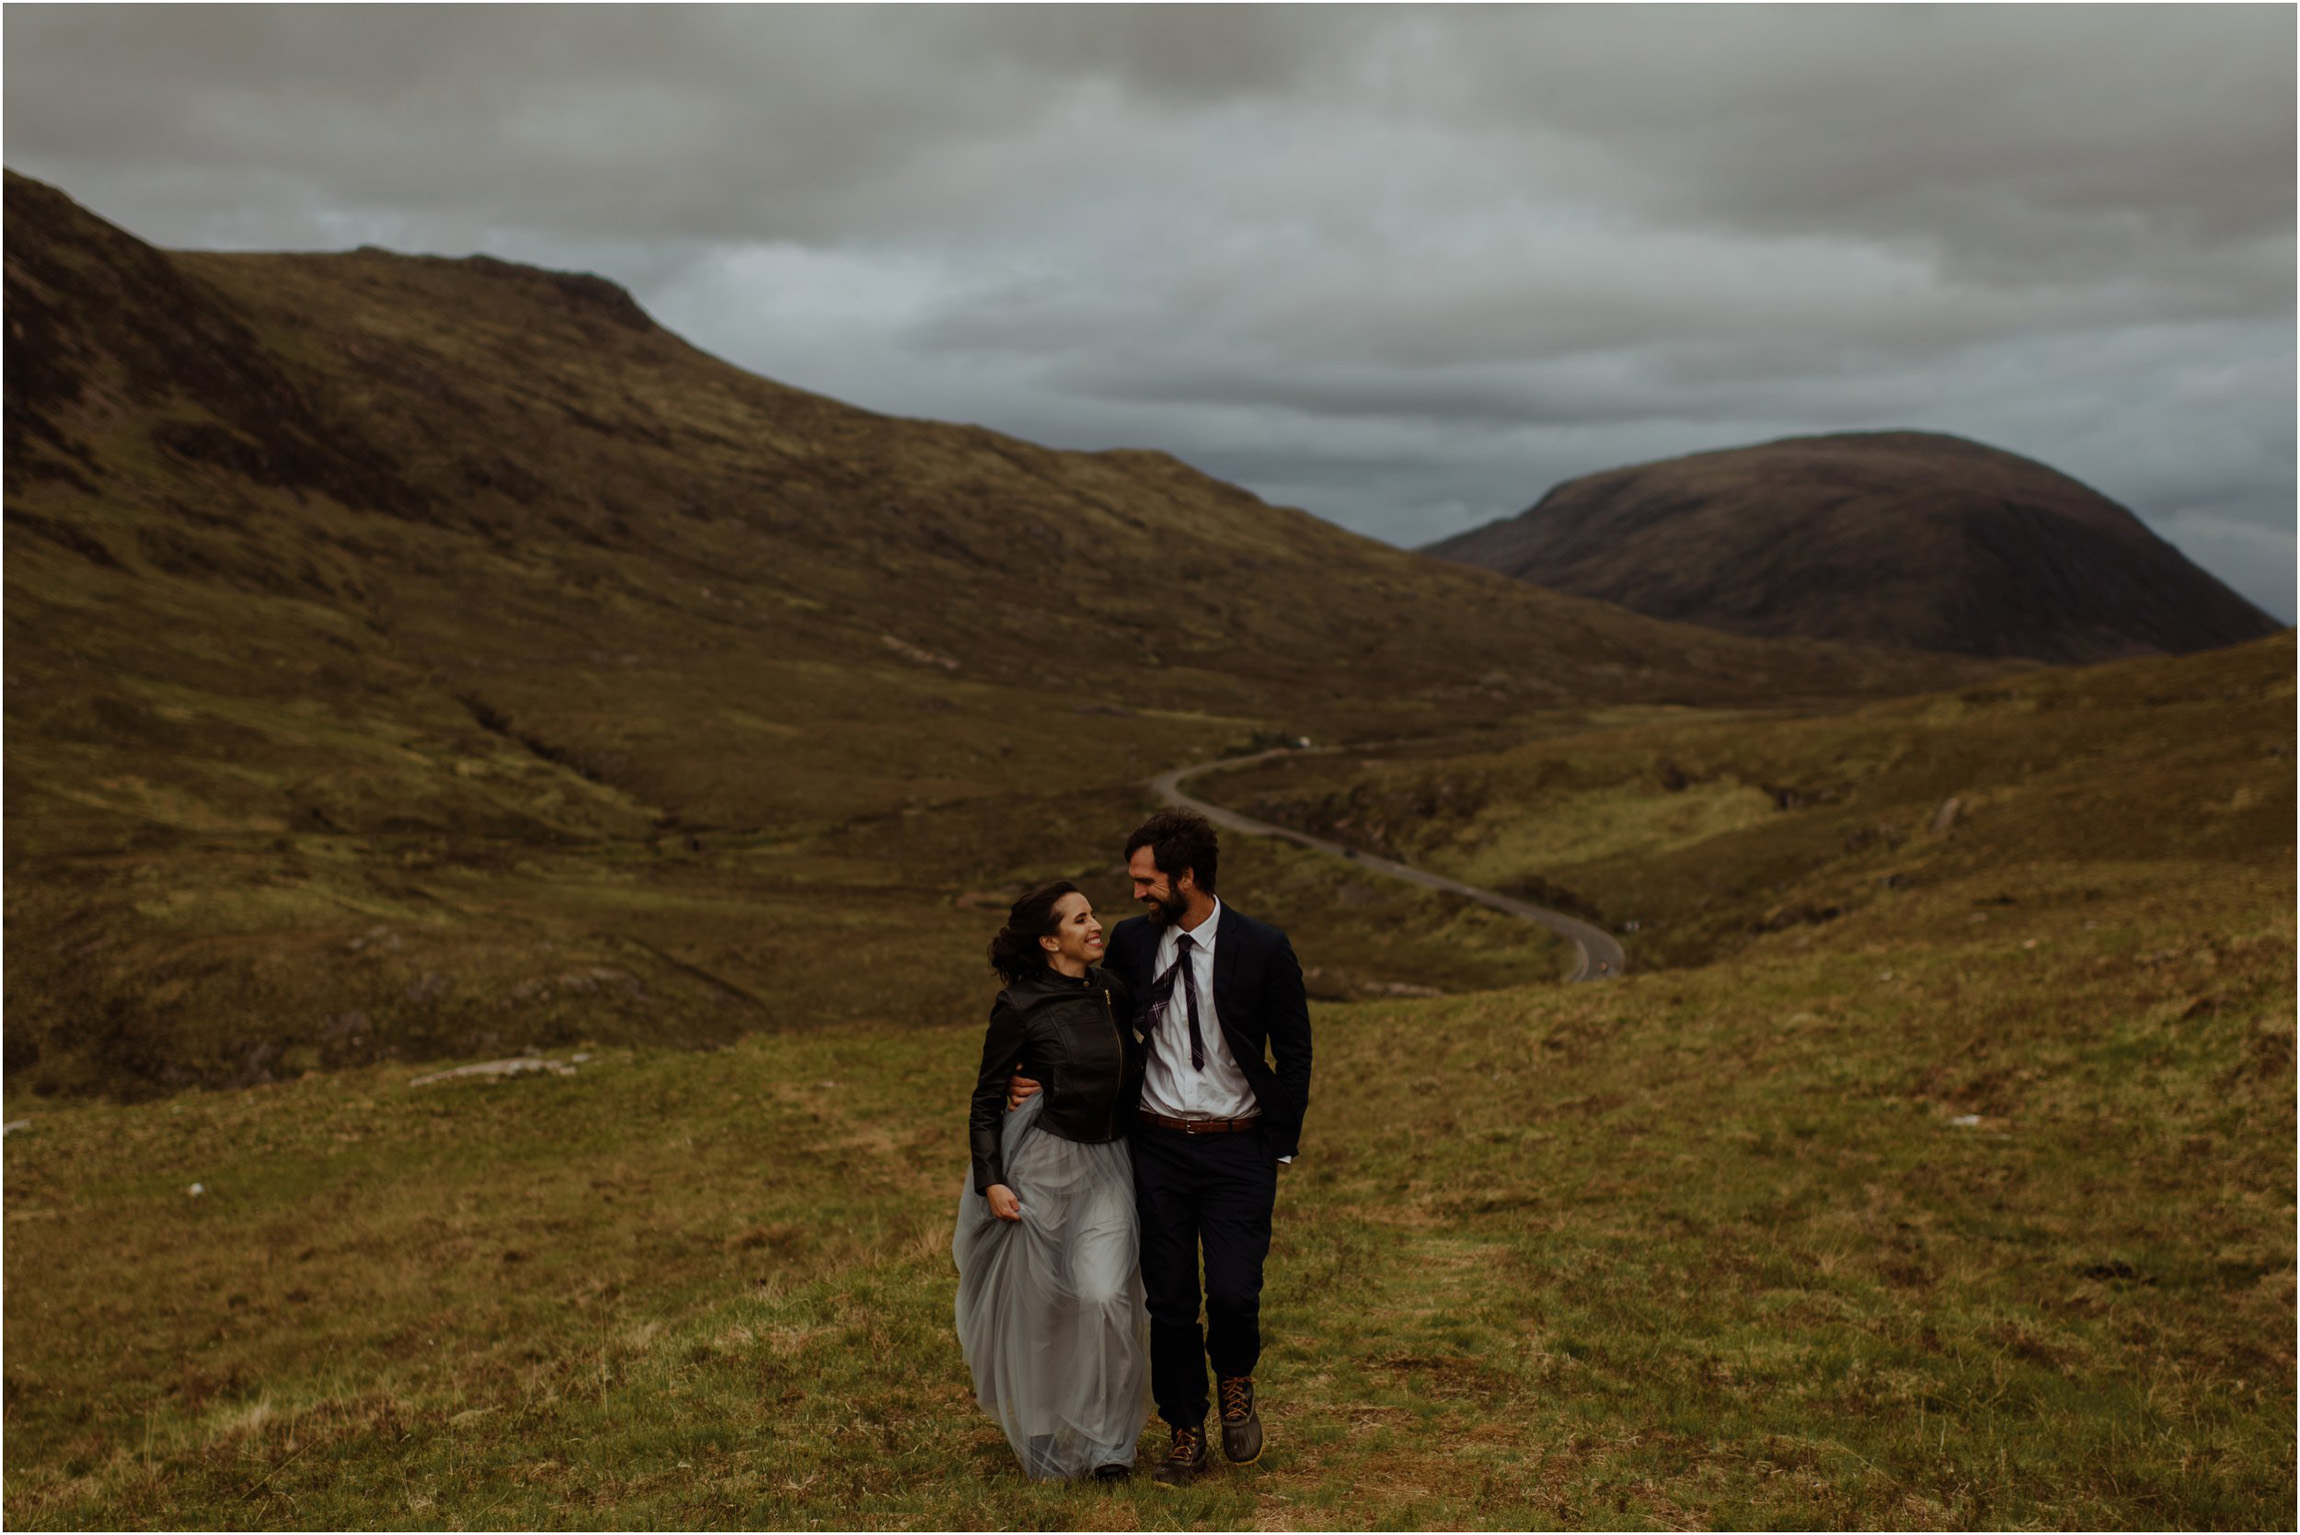 Scotland Wedding Photographer_Glencoe_Melanie_Jim_Anniversary_018.jpg